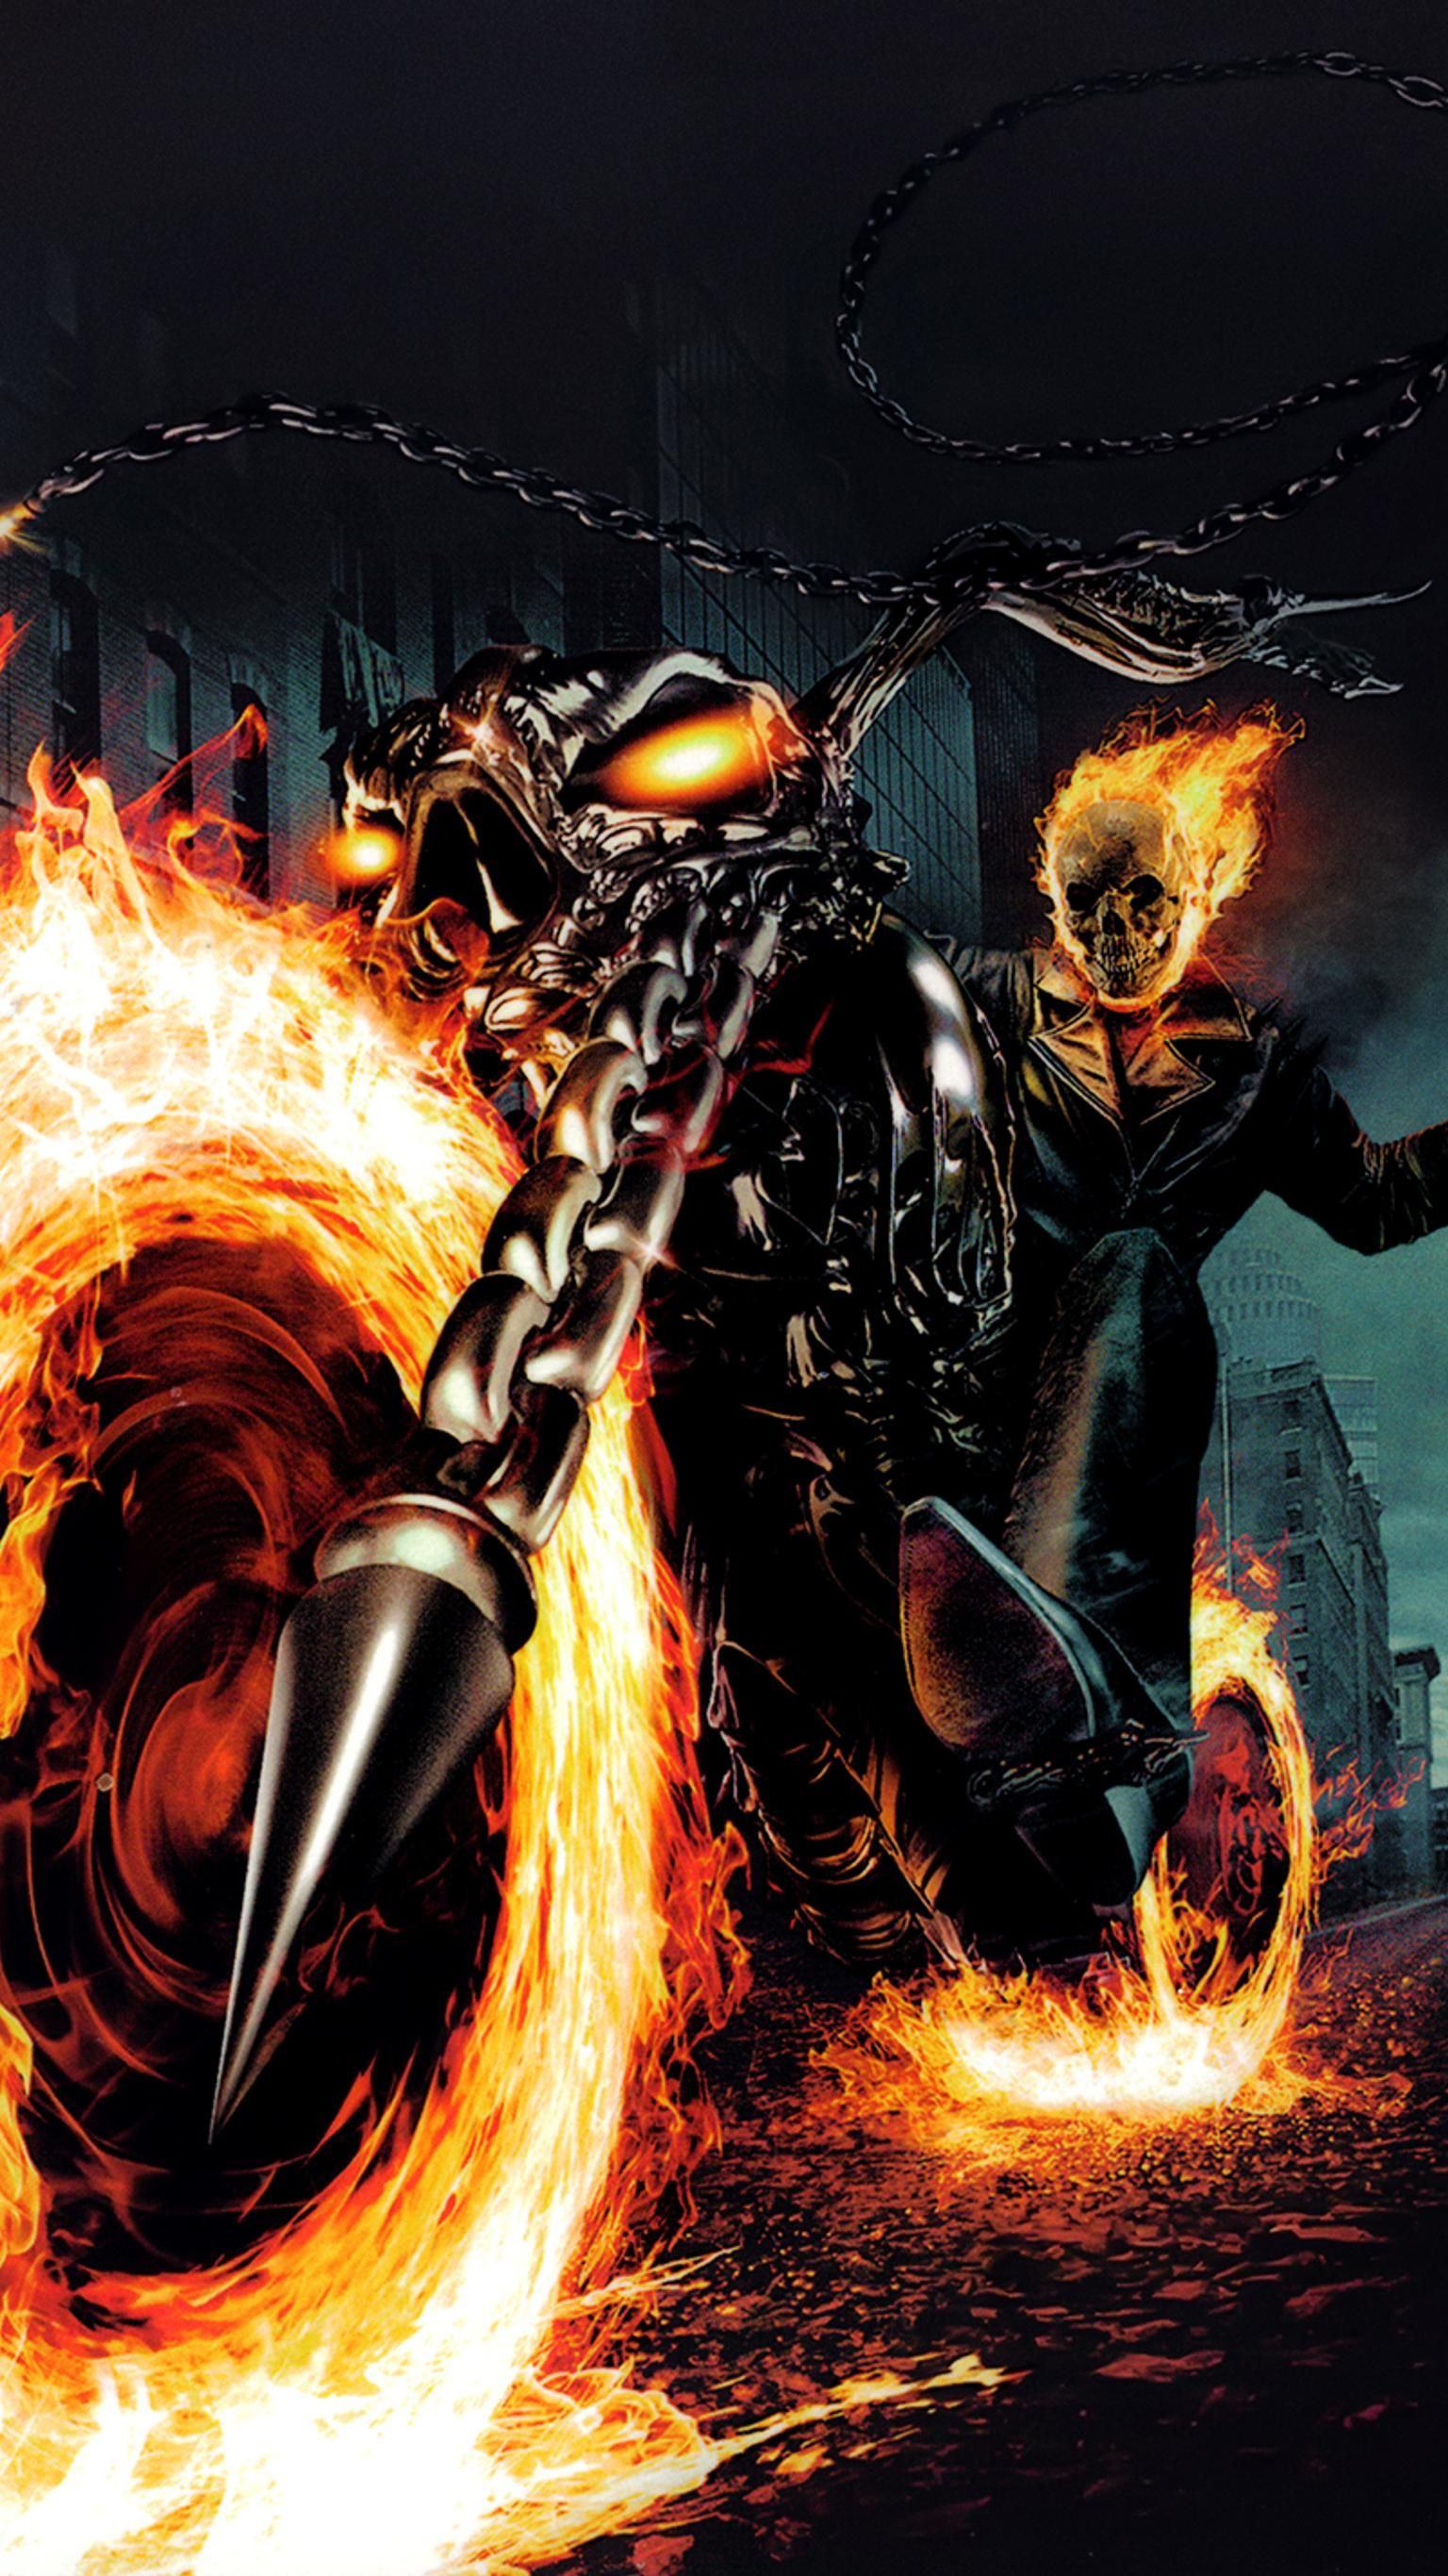 Ghost Rider 2007 Phone Wallpaper In 2020 With Images Ghost Rider Tattoo Ghost Rider Movie Ghost Rider Johnny Blaze